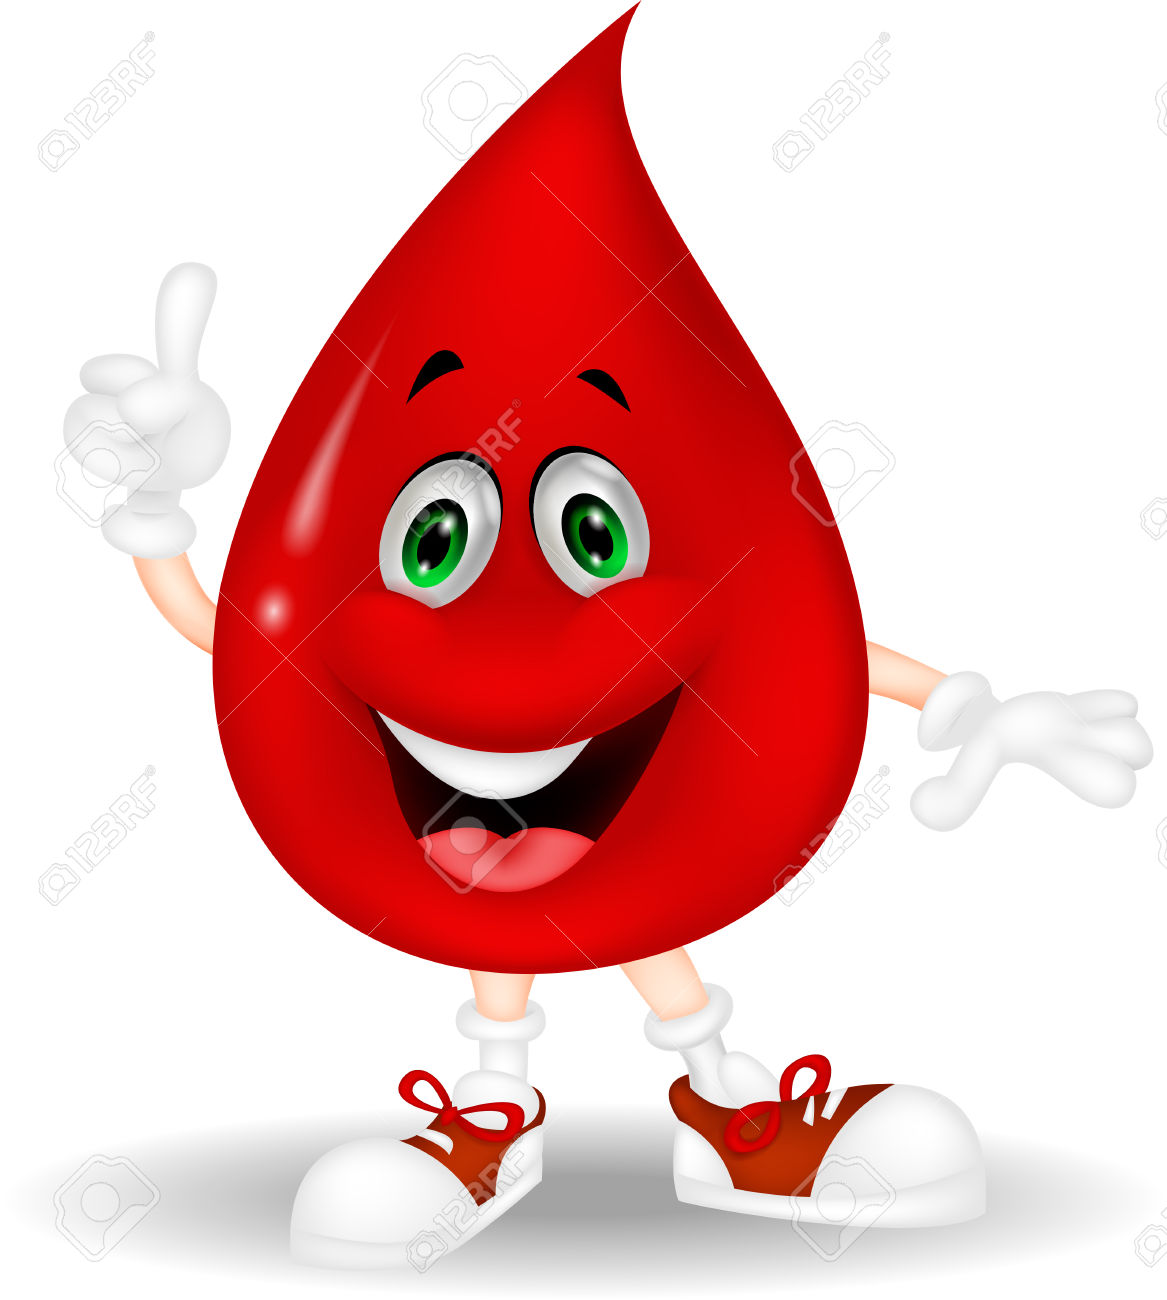 Red blood cells clipart.